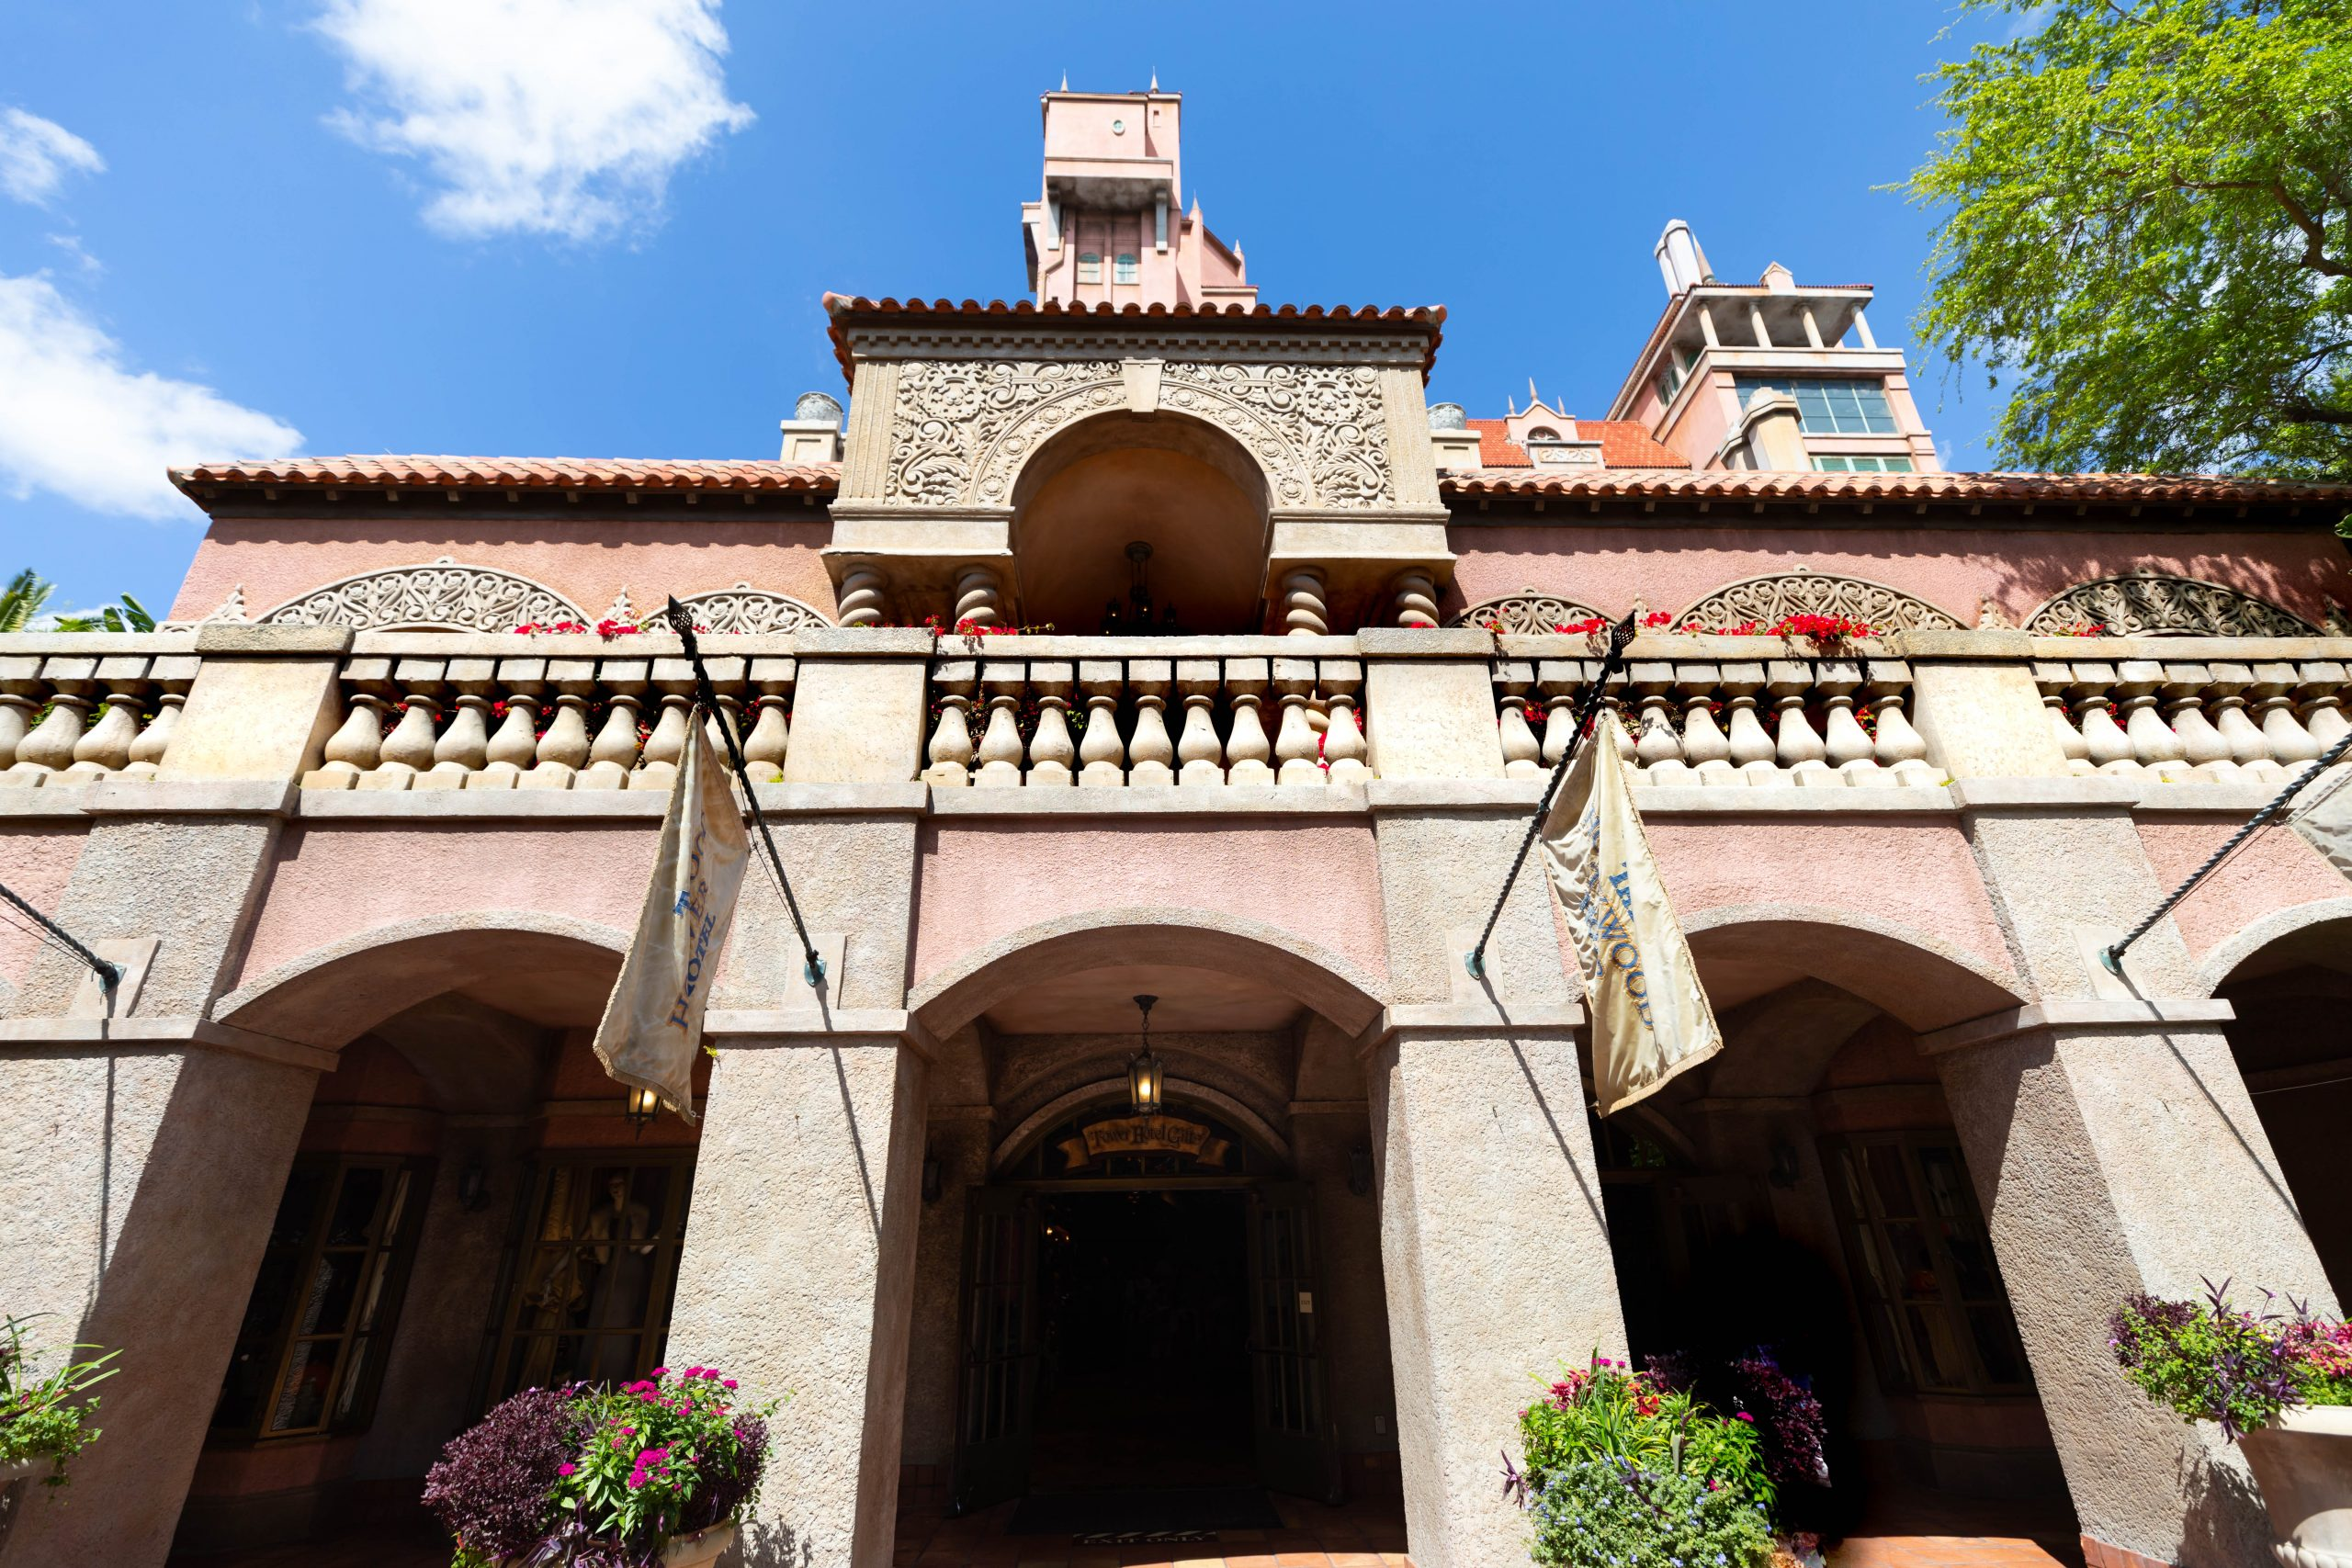 Hollywood Tower Hotel in Orlando, Florida Review by Luxury Travel Writer Annie Fairfax